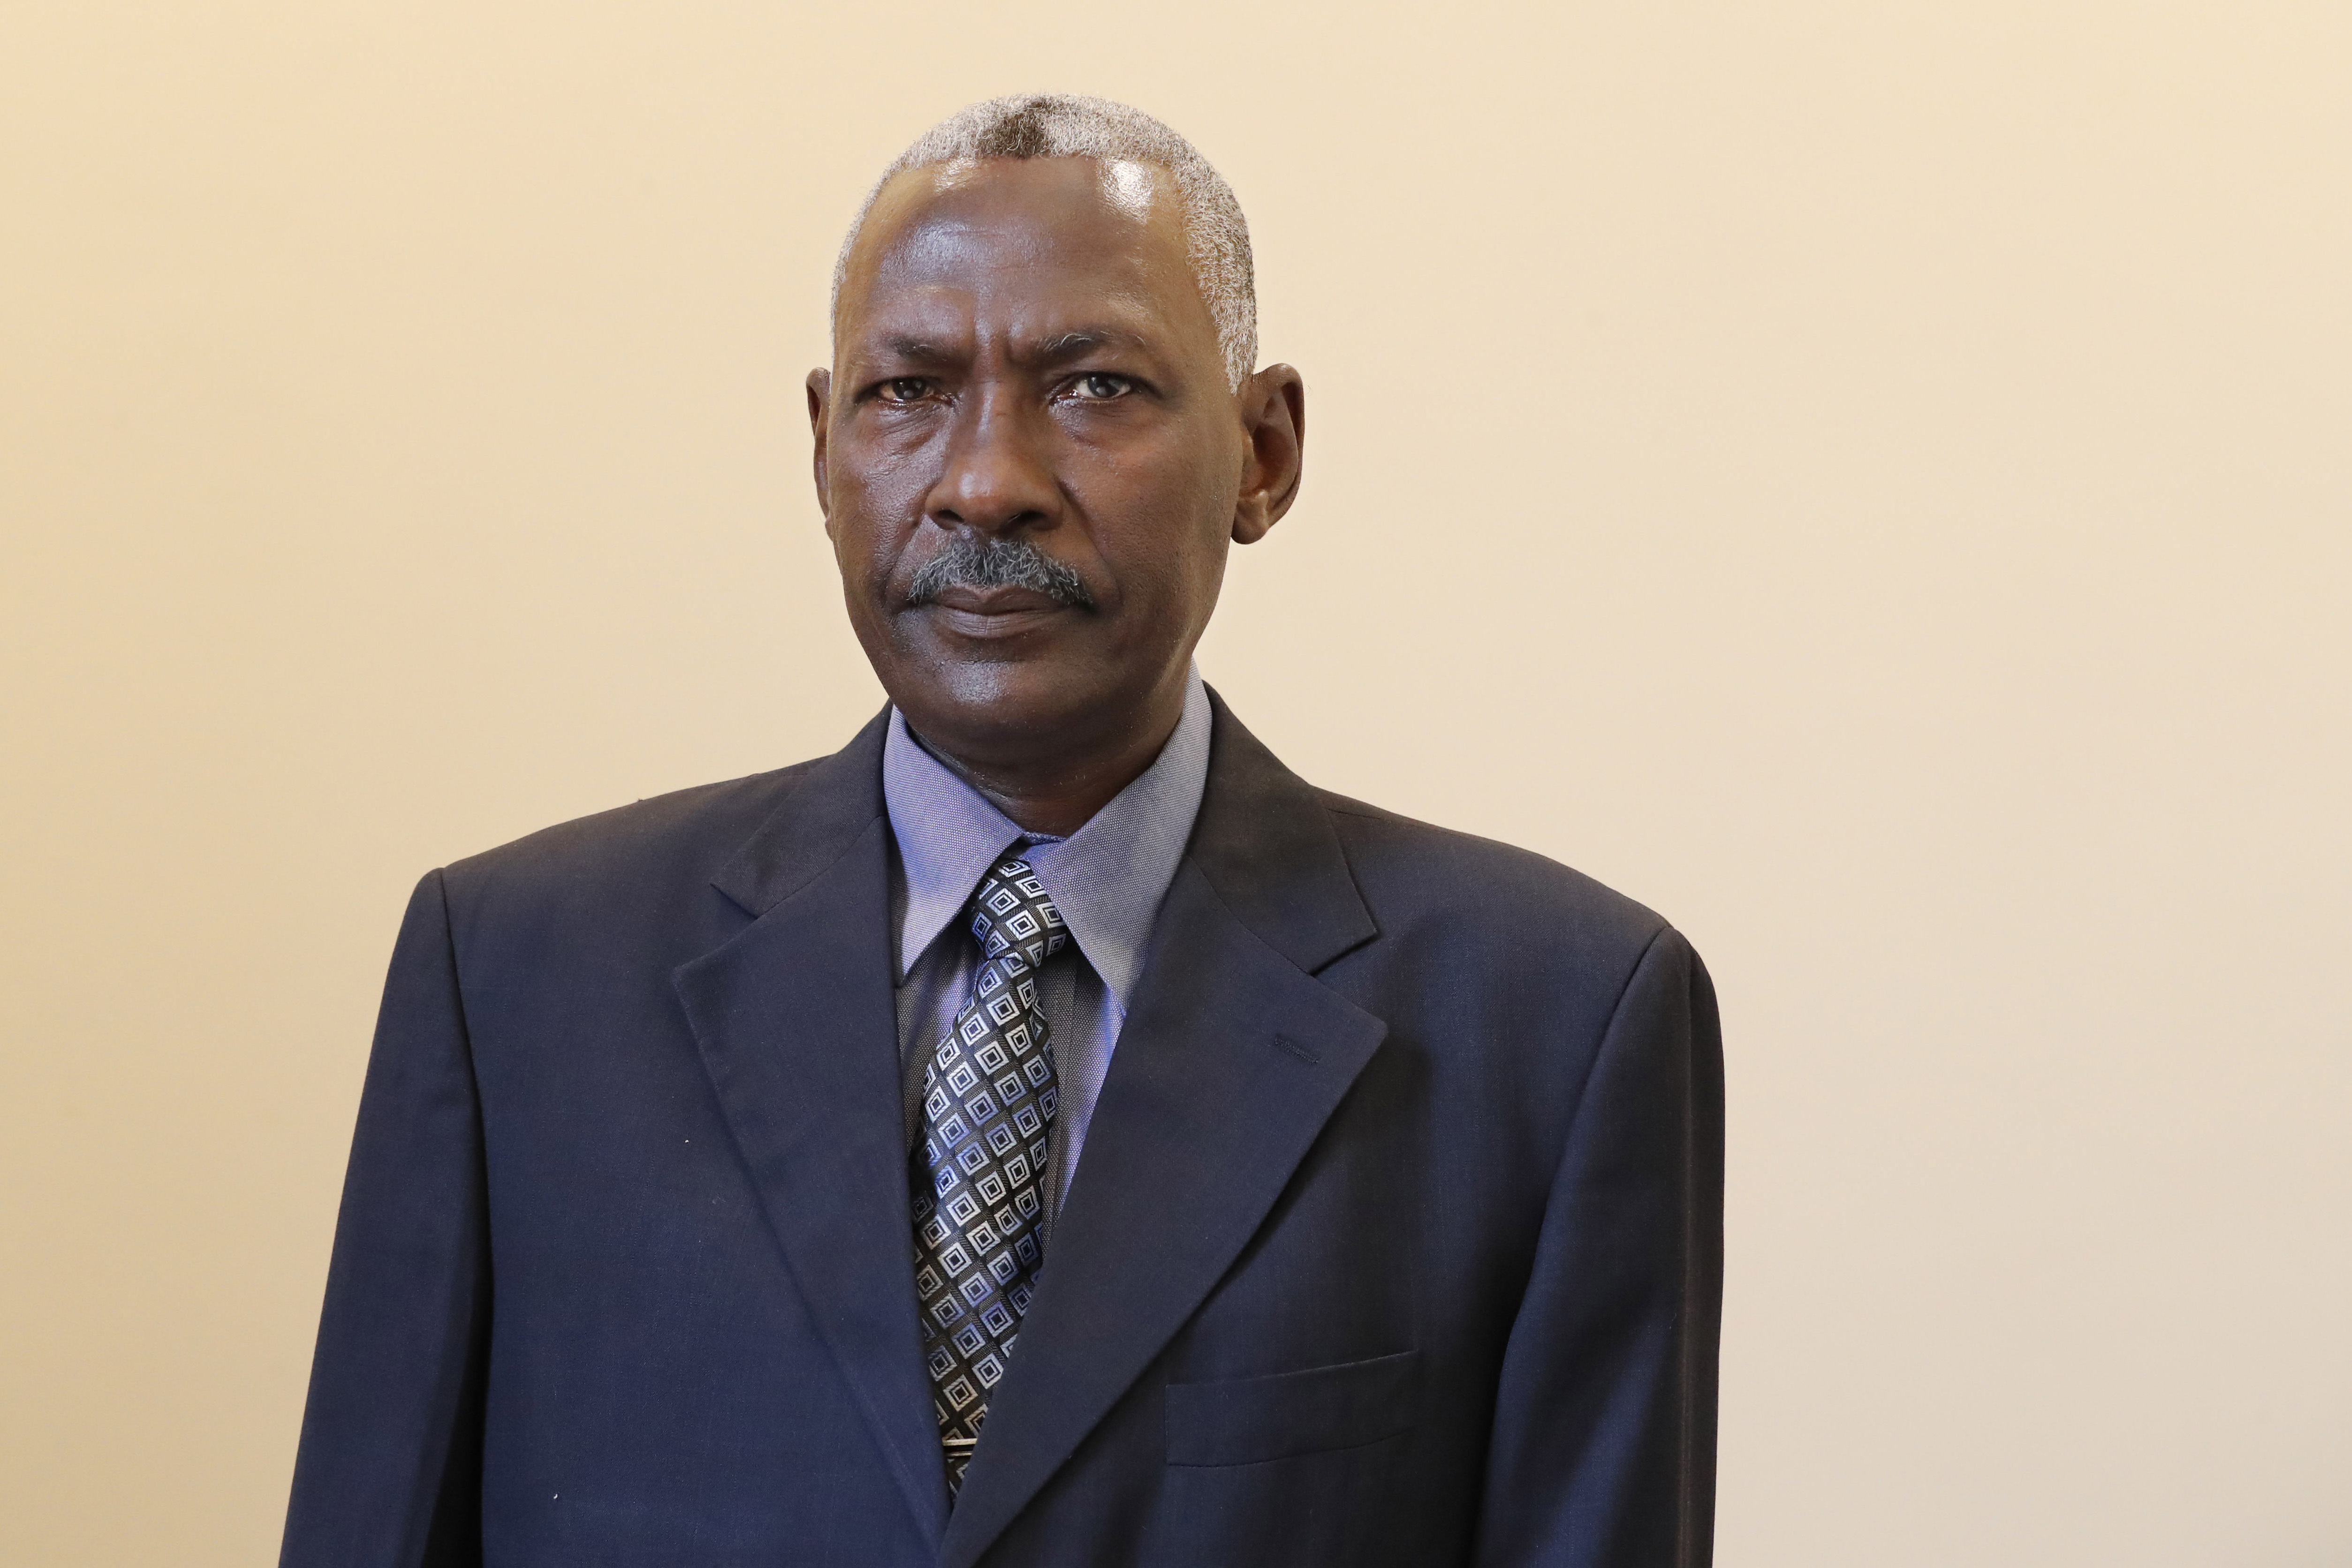 Maj. Gen. Yassin Ibrahim Yassin poses for a portrait after taking the oath as defense minister at the Presidential Palace in Khartoum, Sudan, on June 2, 2020. (Marwan Ali/AP)